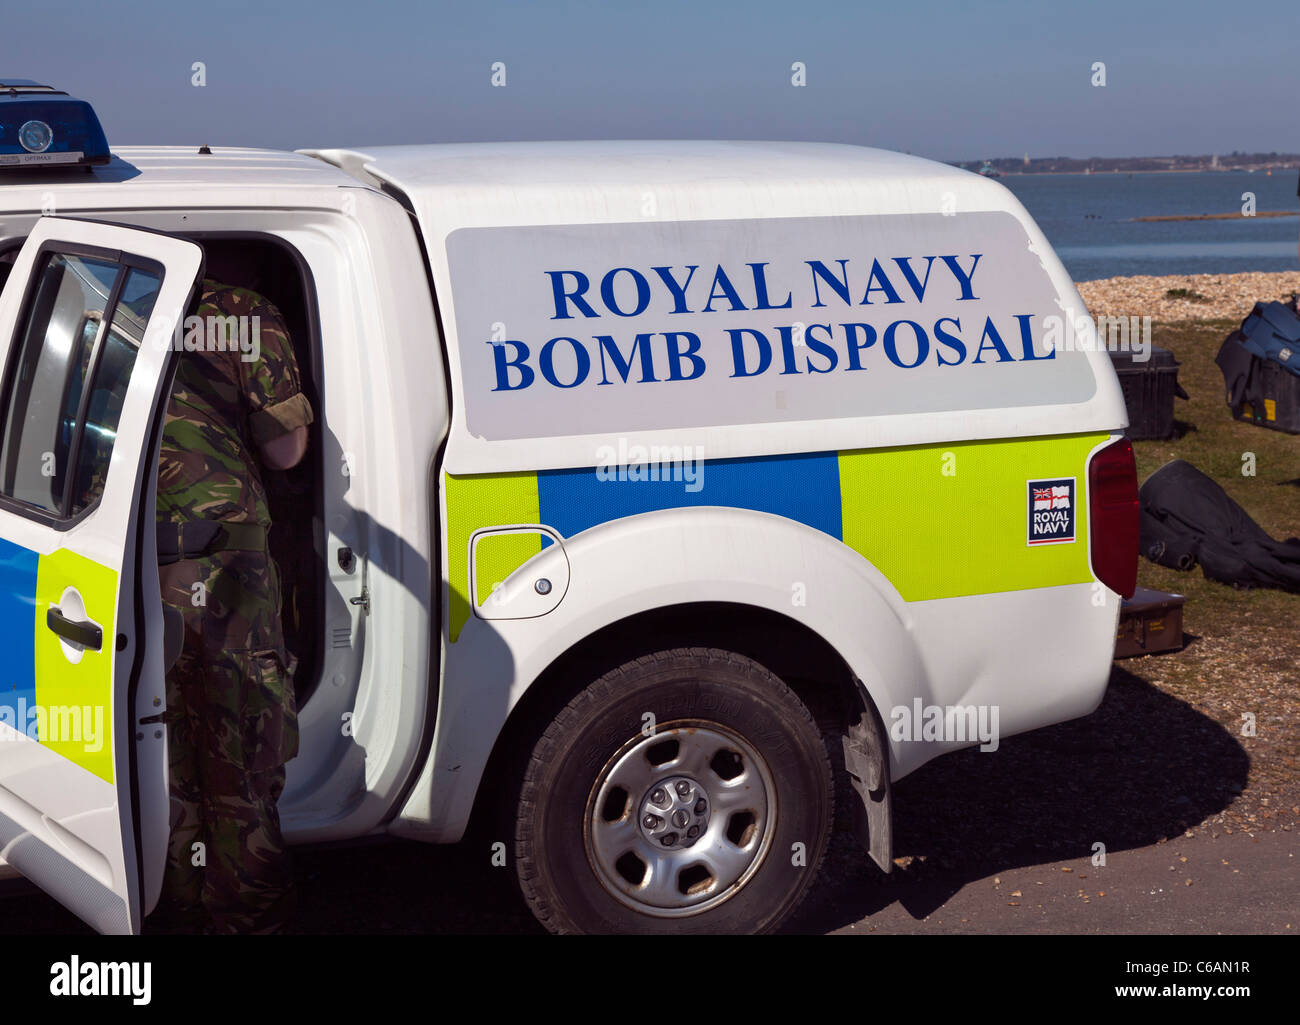 Royal Navy Bomb Disposal vehicle van emergency response diffuse make safe blow up professional army trained secure - Stock Image